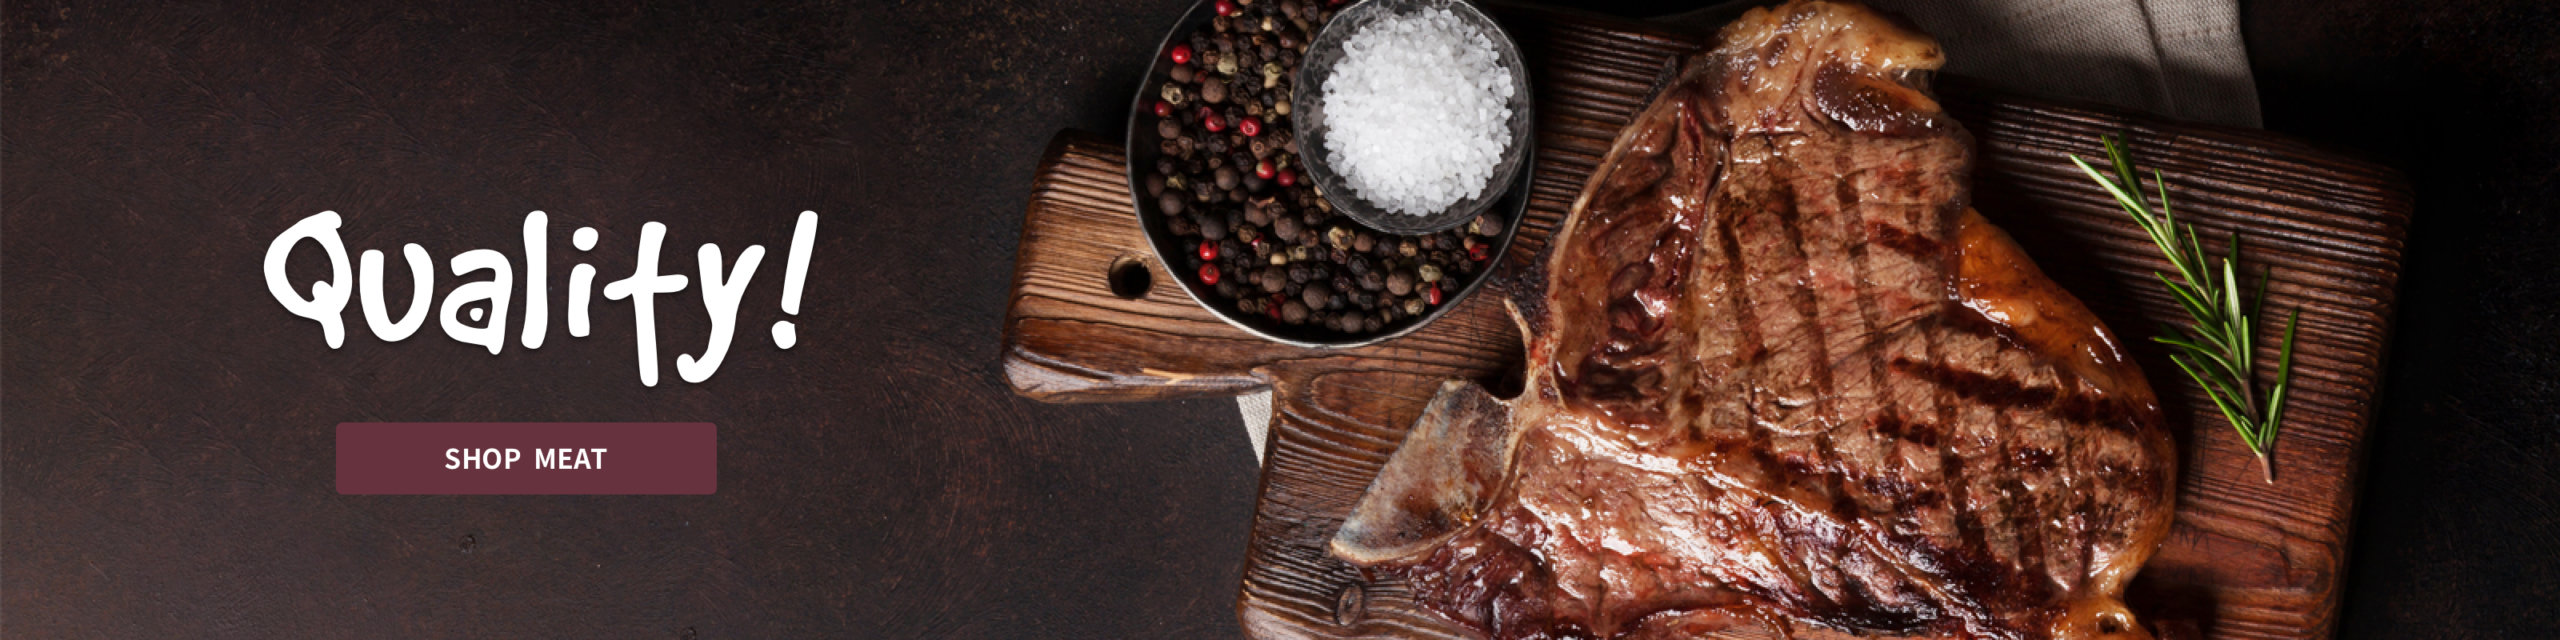 cooked meat, salt and peppercorns on a wooden cutting board.